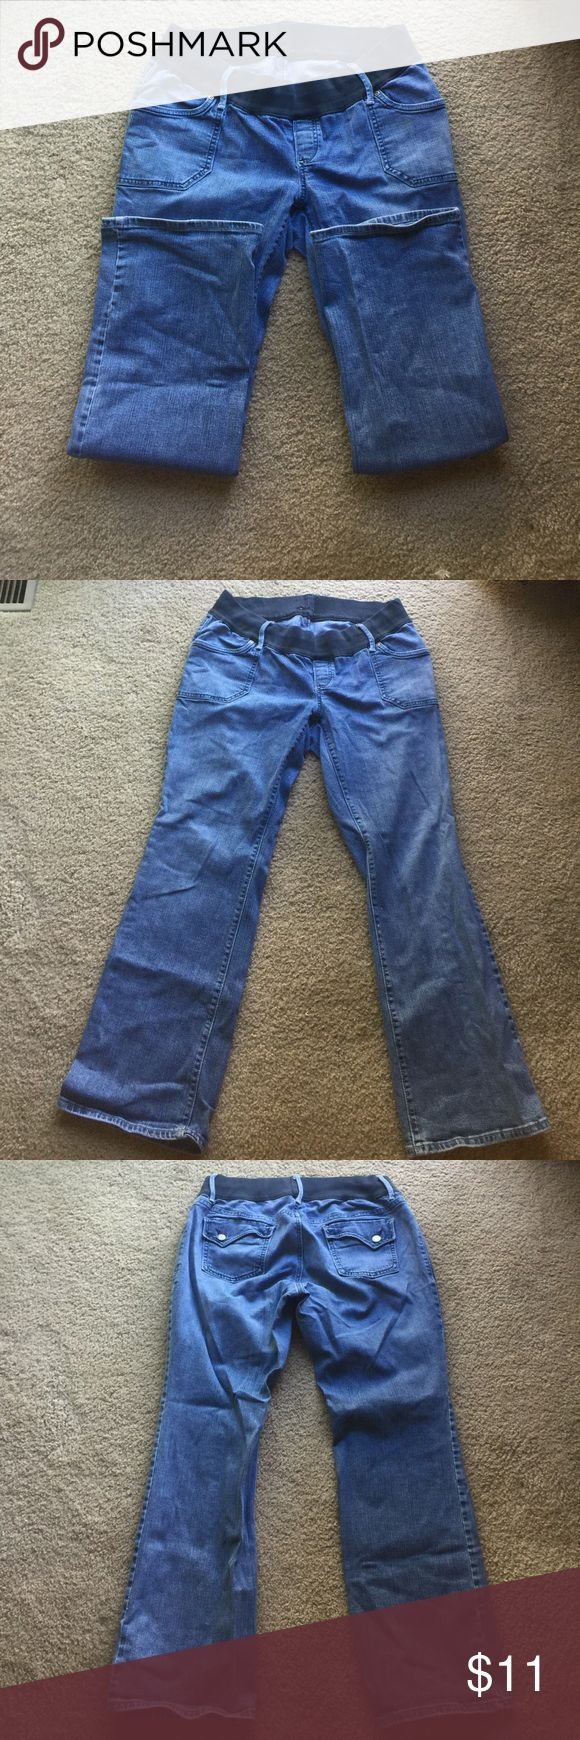 Old Navy Large Maternity Jeans Old Navy Large Maternity Jeans Old Navy Jeans